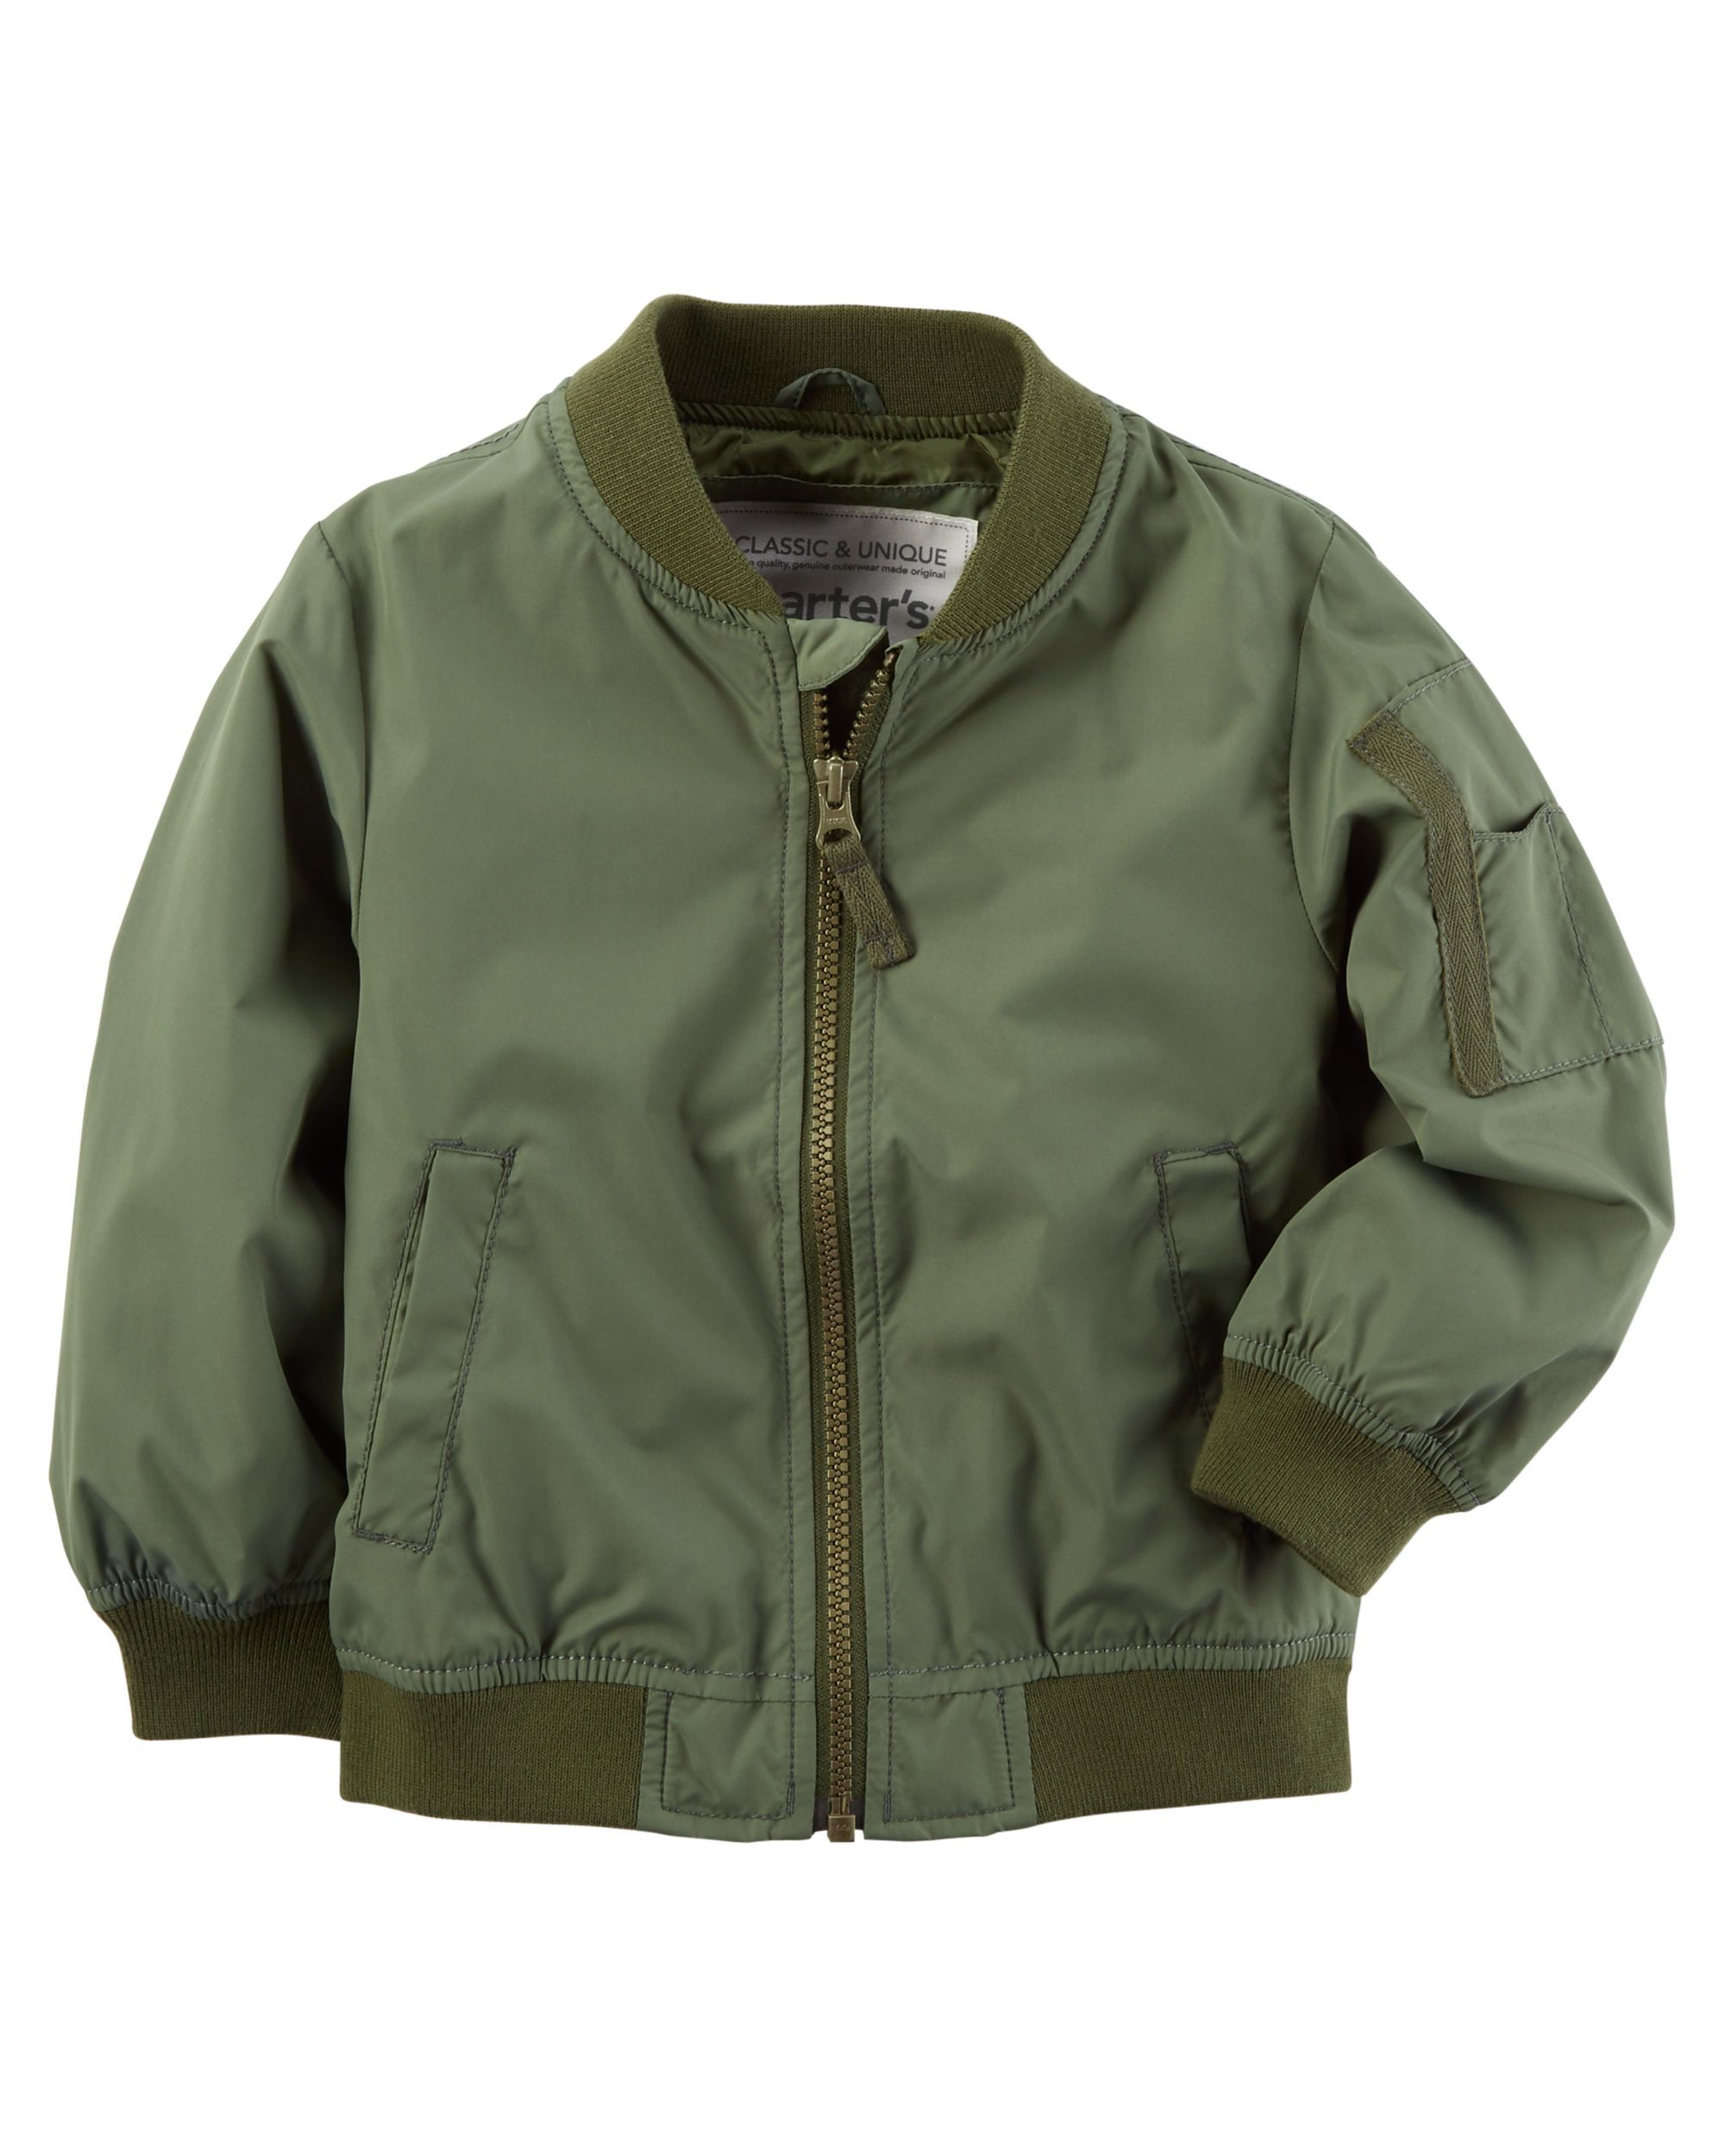 Kid Boy Bomber Jacket From Carters Com Shop Clothing Amp Accessories From A Trusted Name In Kids Toddlers Baby Boy Jackets Kids Bomber Jacket Boy Outerwear [ 2500 x 2000 Pixel ]